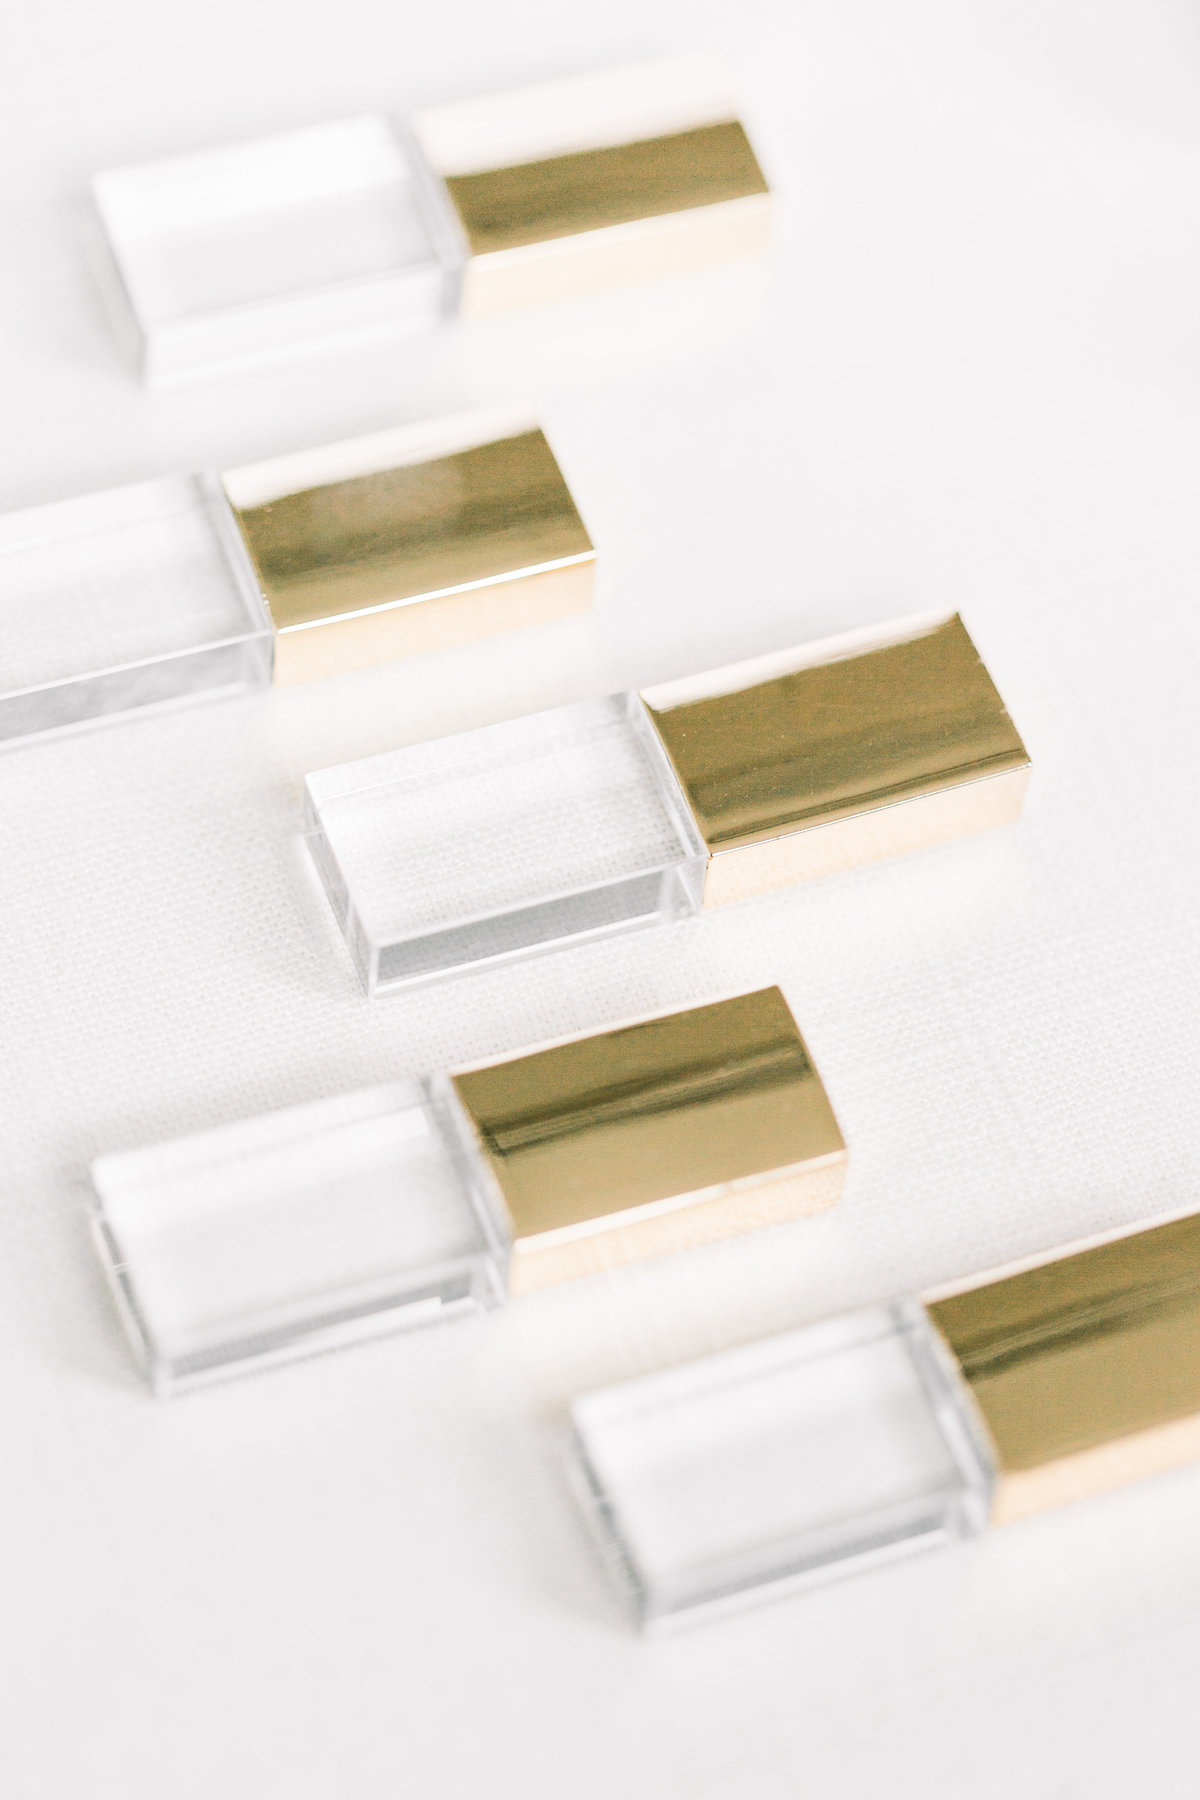 Gold Crystal USBs